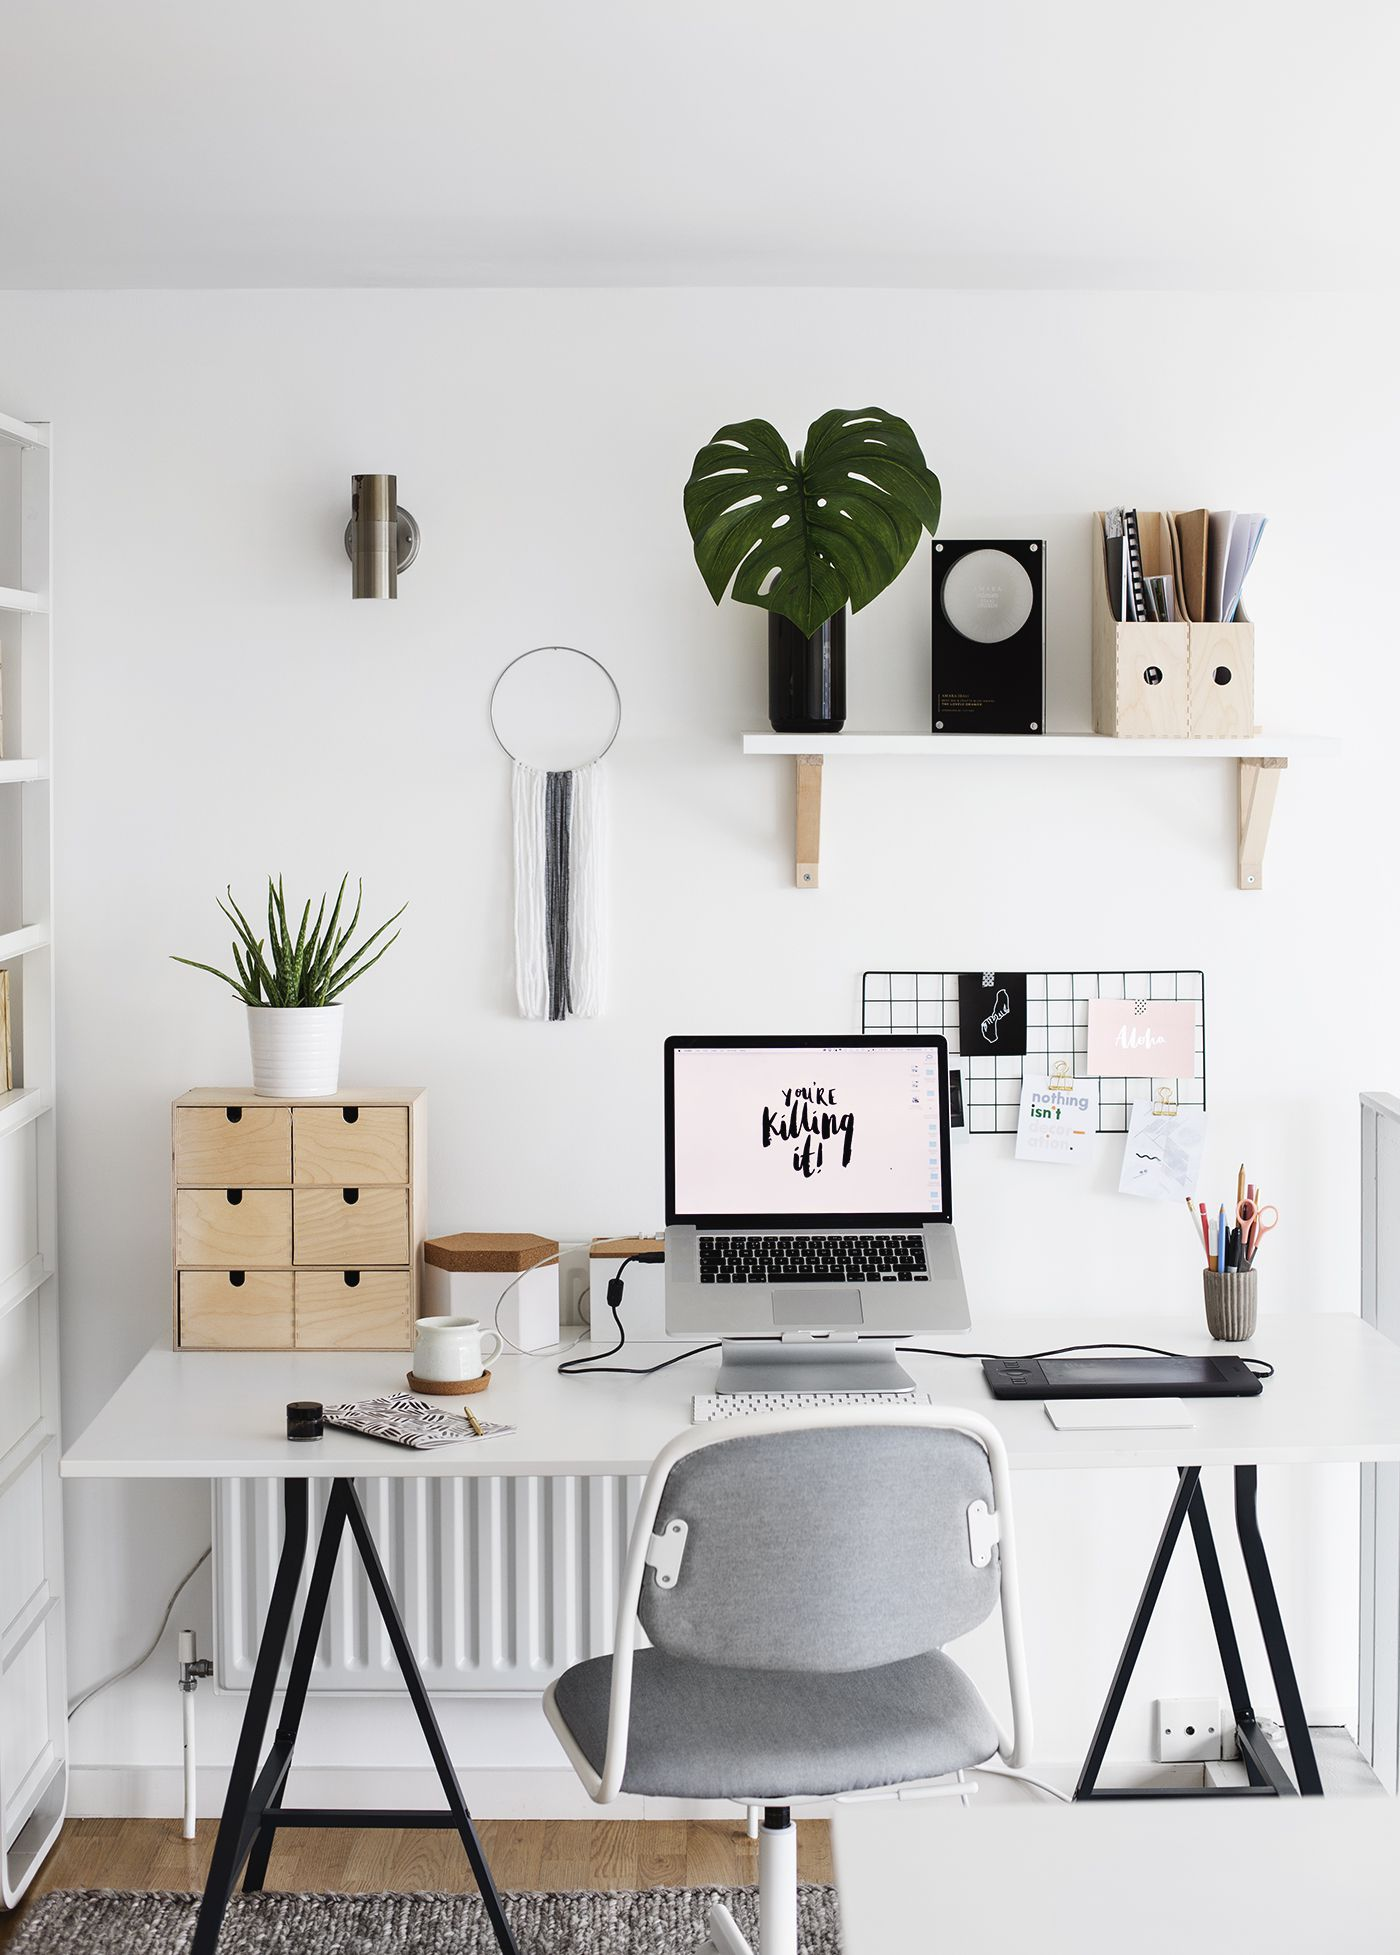 Office Room Design: 8 Office Decor Tips To Maximize Your Productivity